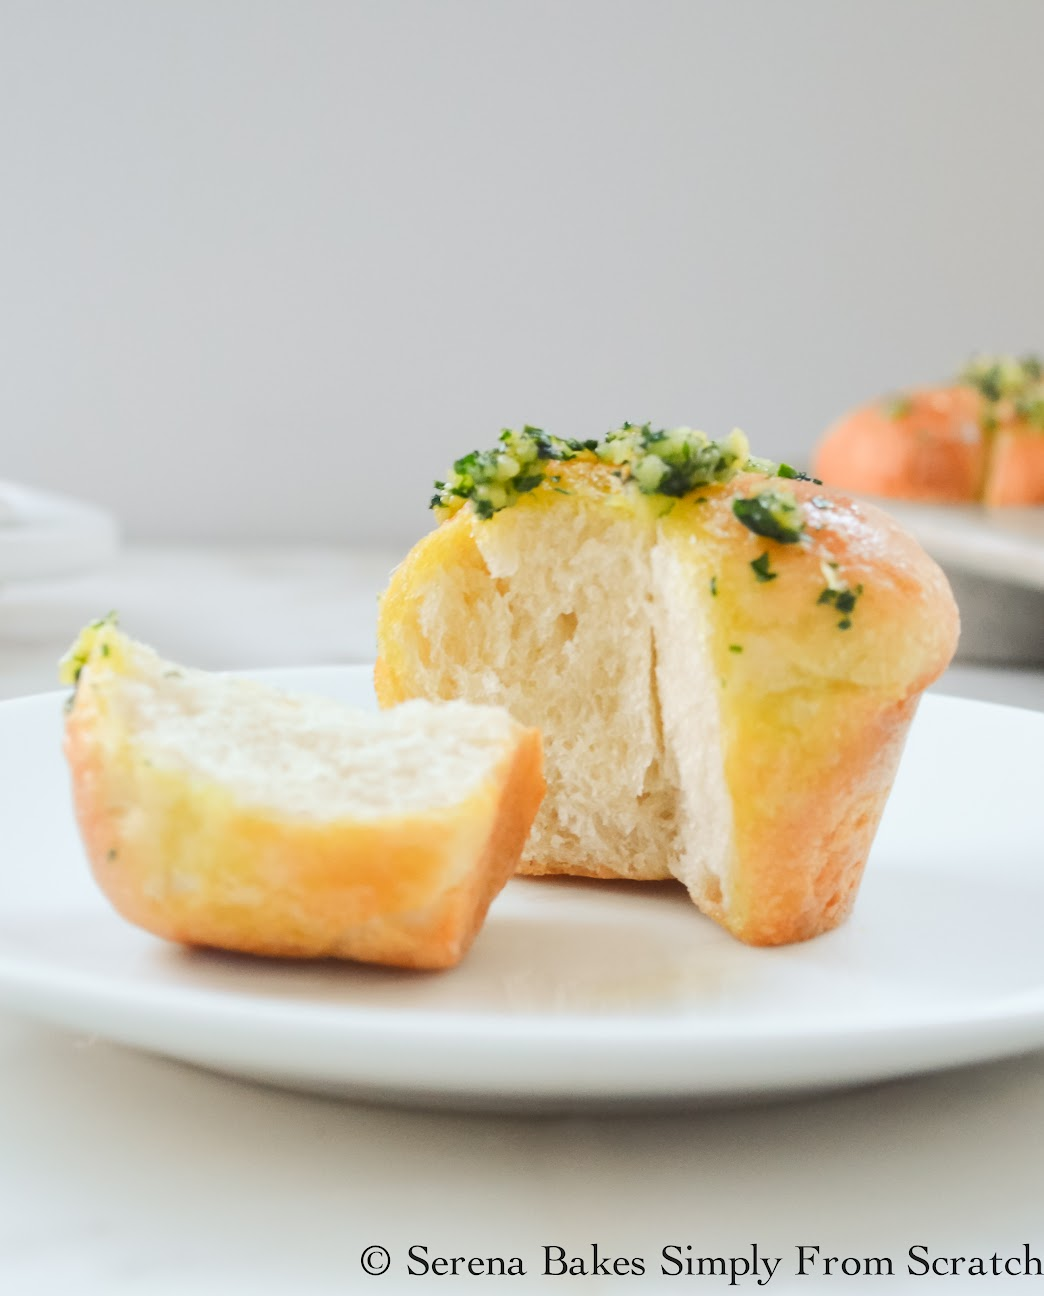 Garlic French Bread Dinner Rolls are a holiday favorite.